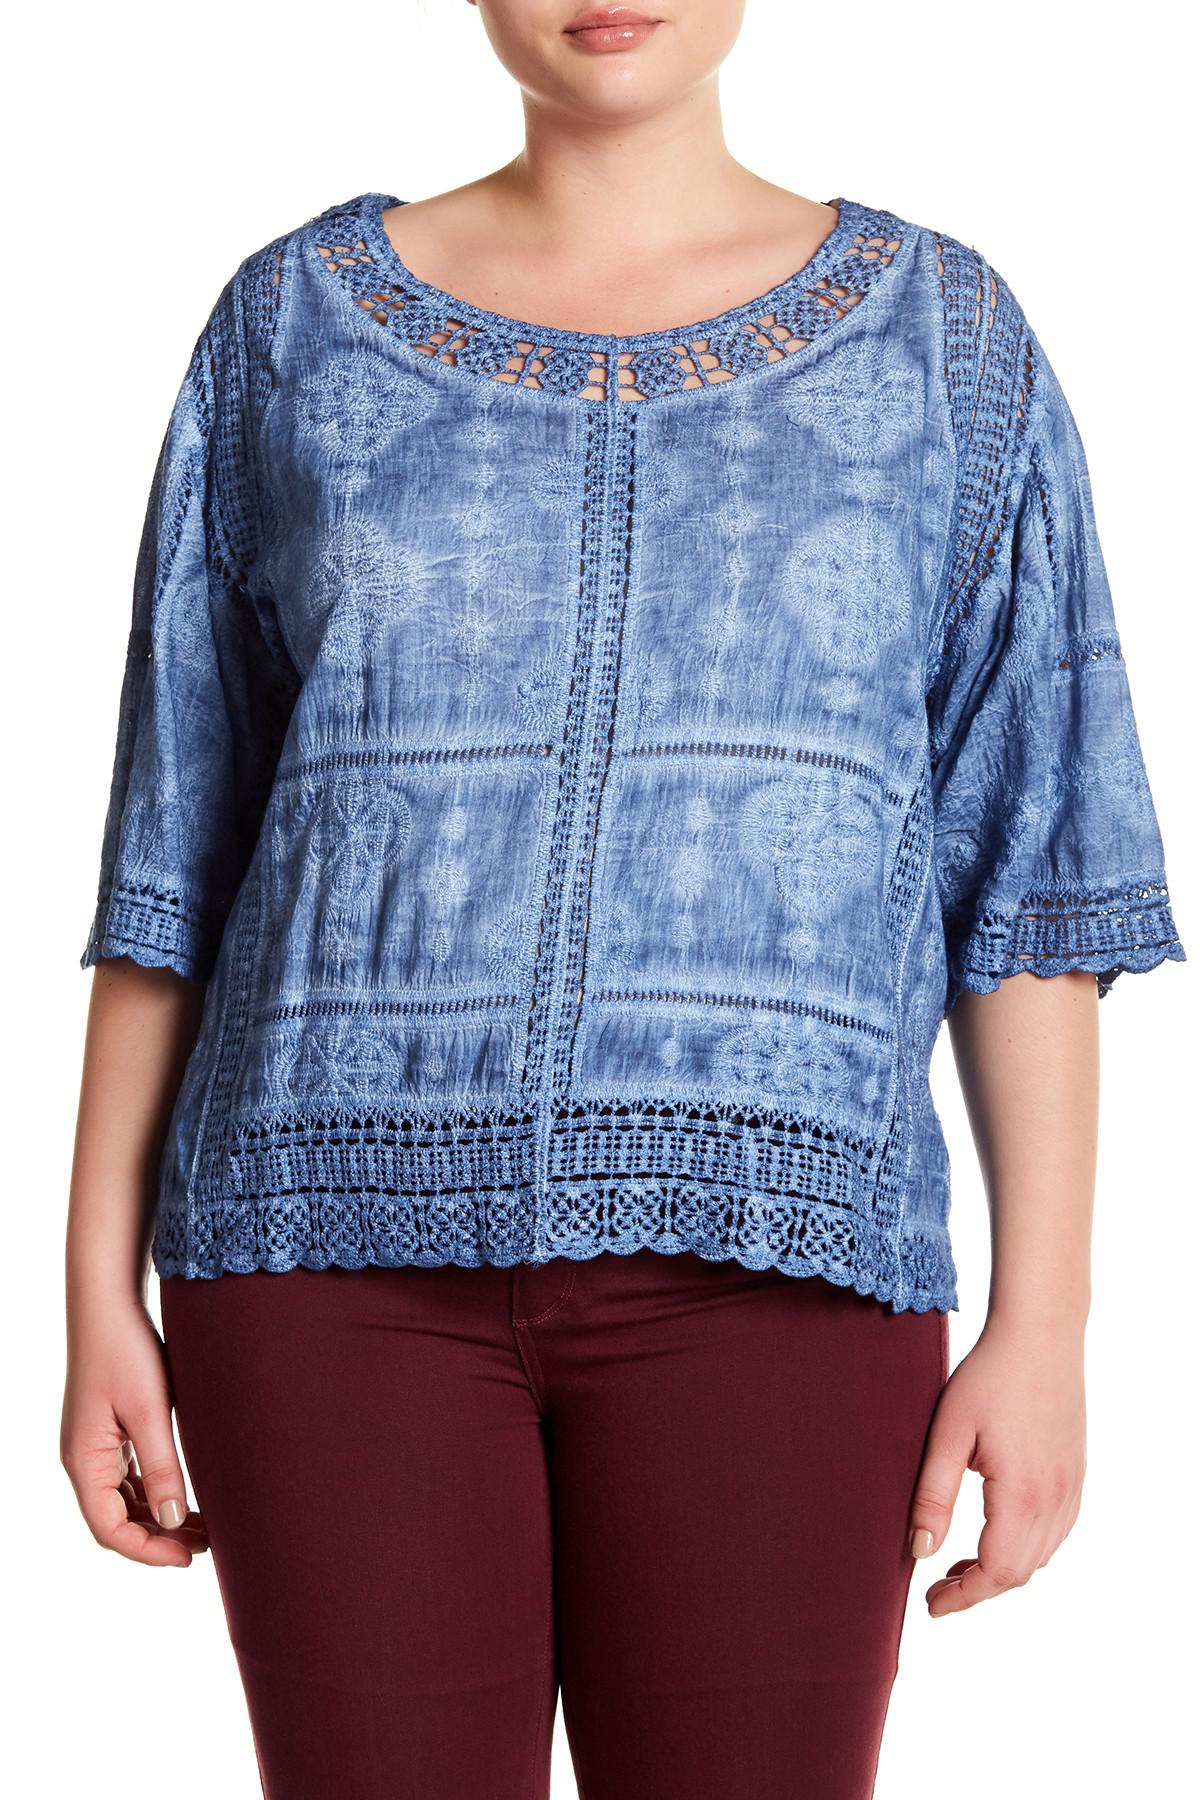 b3a26fcdc51 Lyst - Democracy Crochet Lace Scalloped Blouse (plus Size) in Blue